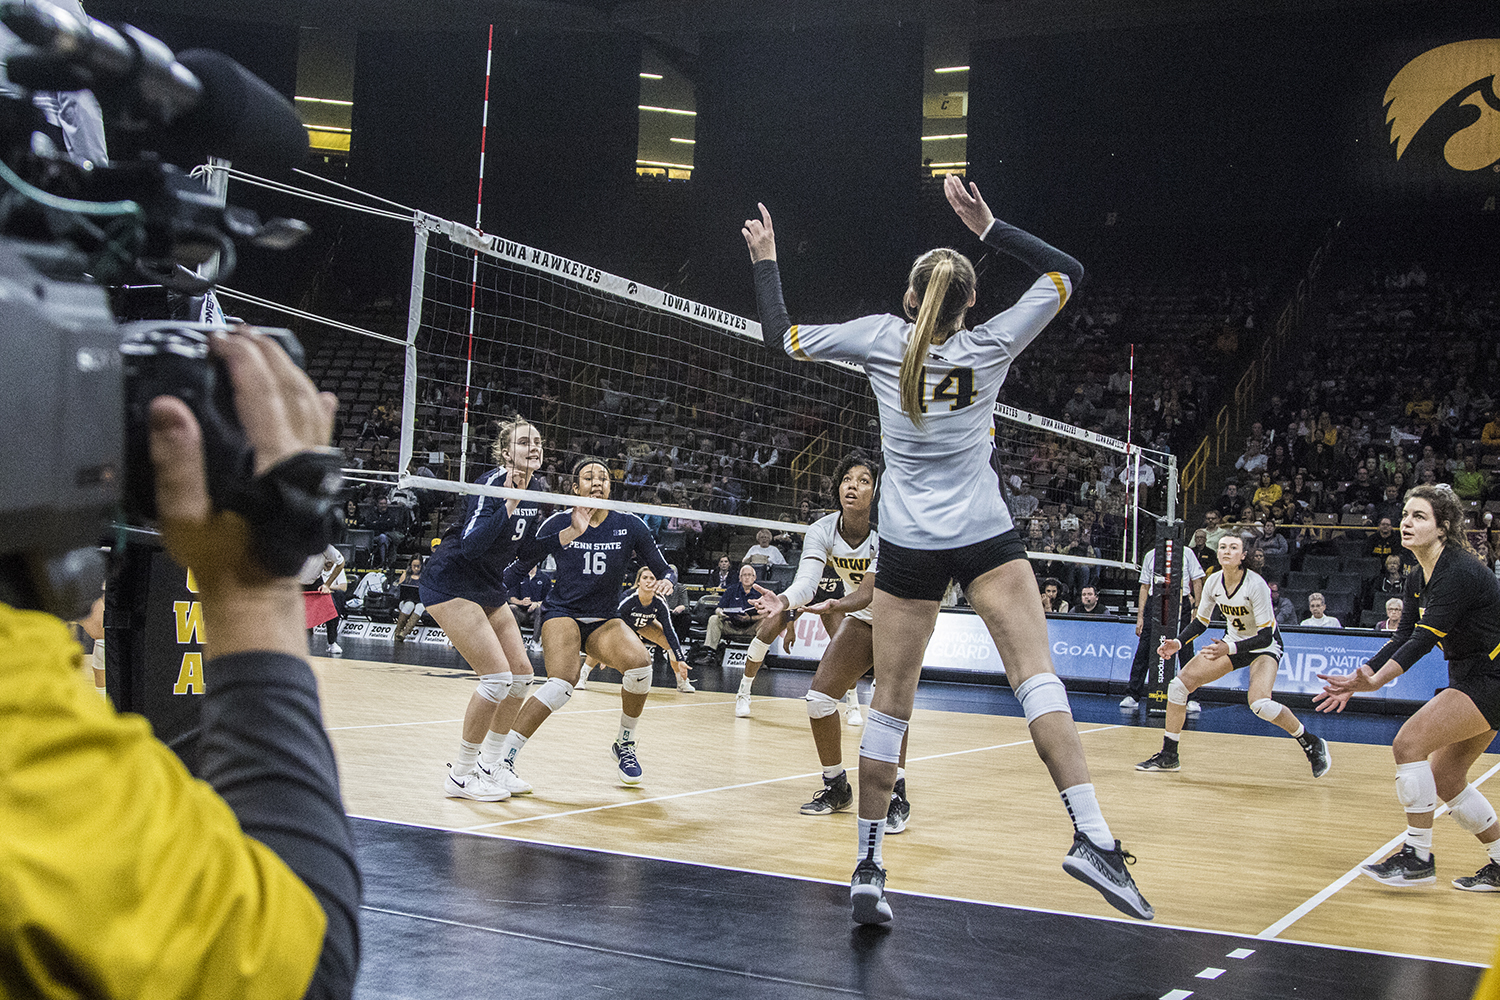 Iowa junior Cali Hoye prepares to spike the ball during a volleyball match between Iowa and Penn State at Carver-Hawkeye Arena on Saturday, Nov. 3, 2018. The Hawkeyes were shut out by the Nittany Lions, 3-0.